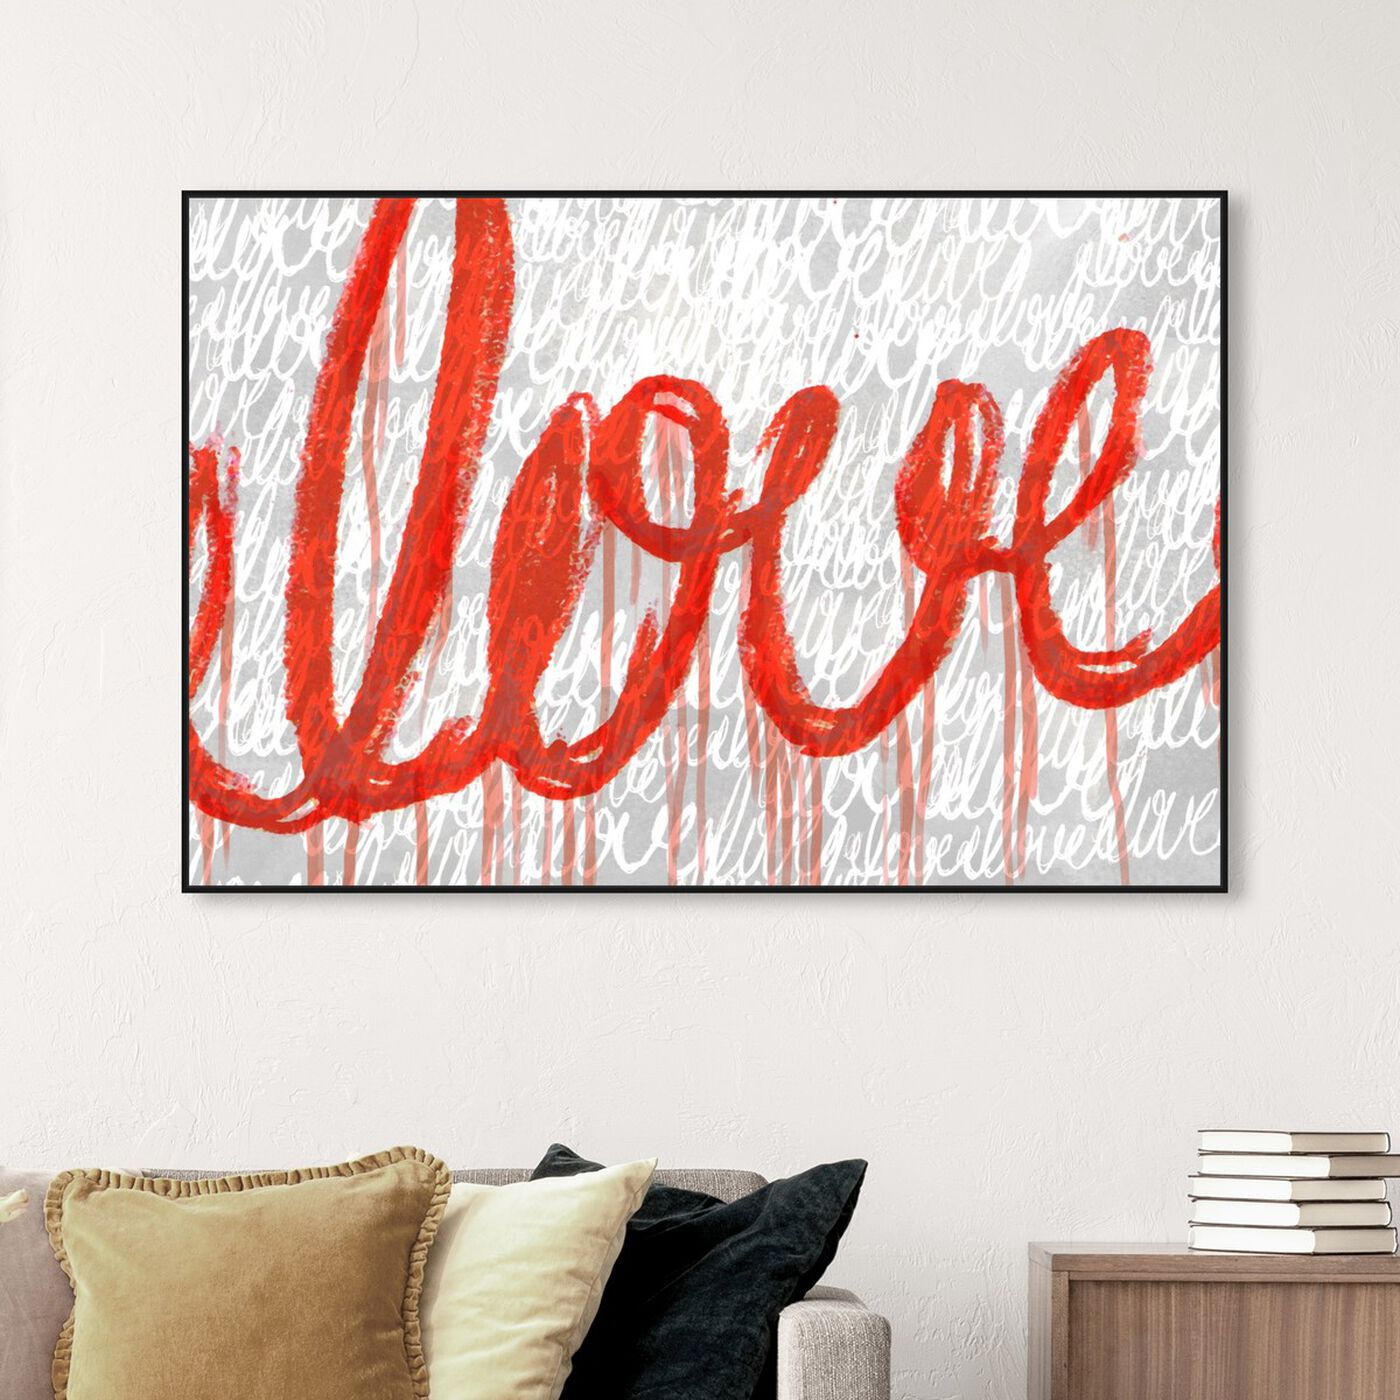 Hanging view of Round and Round featuring typography and quotes and love quotes and sayings art.